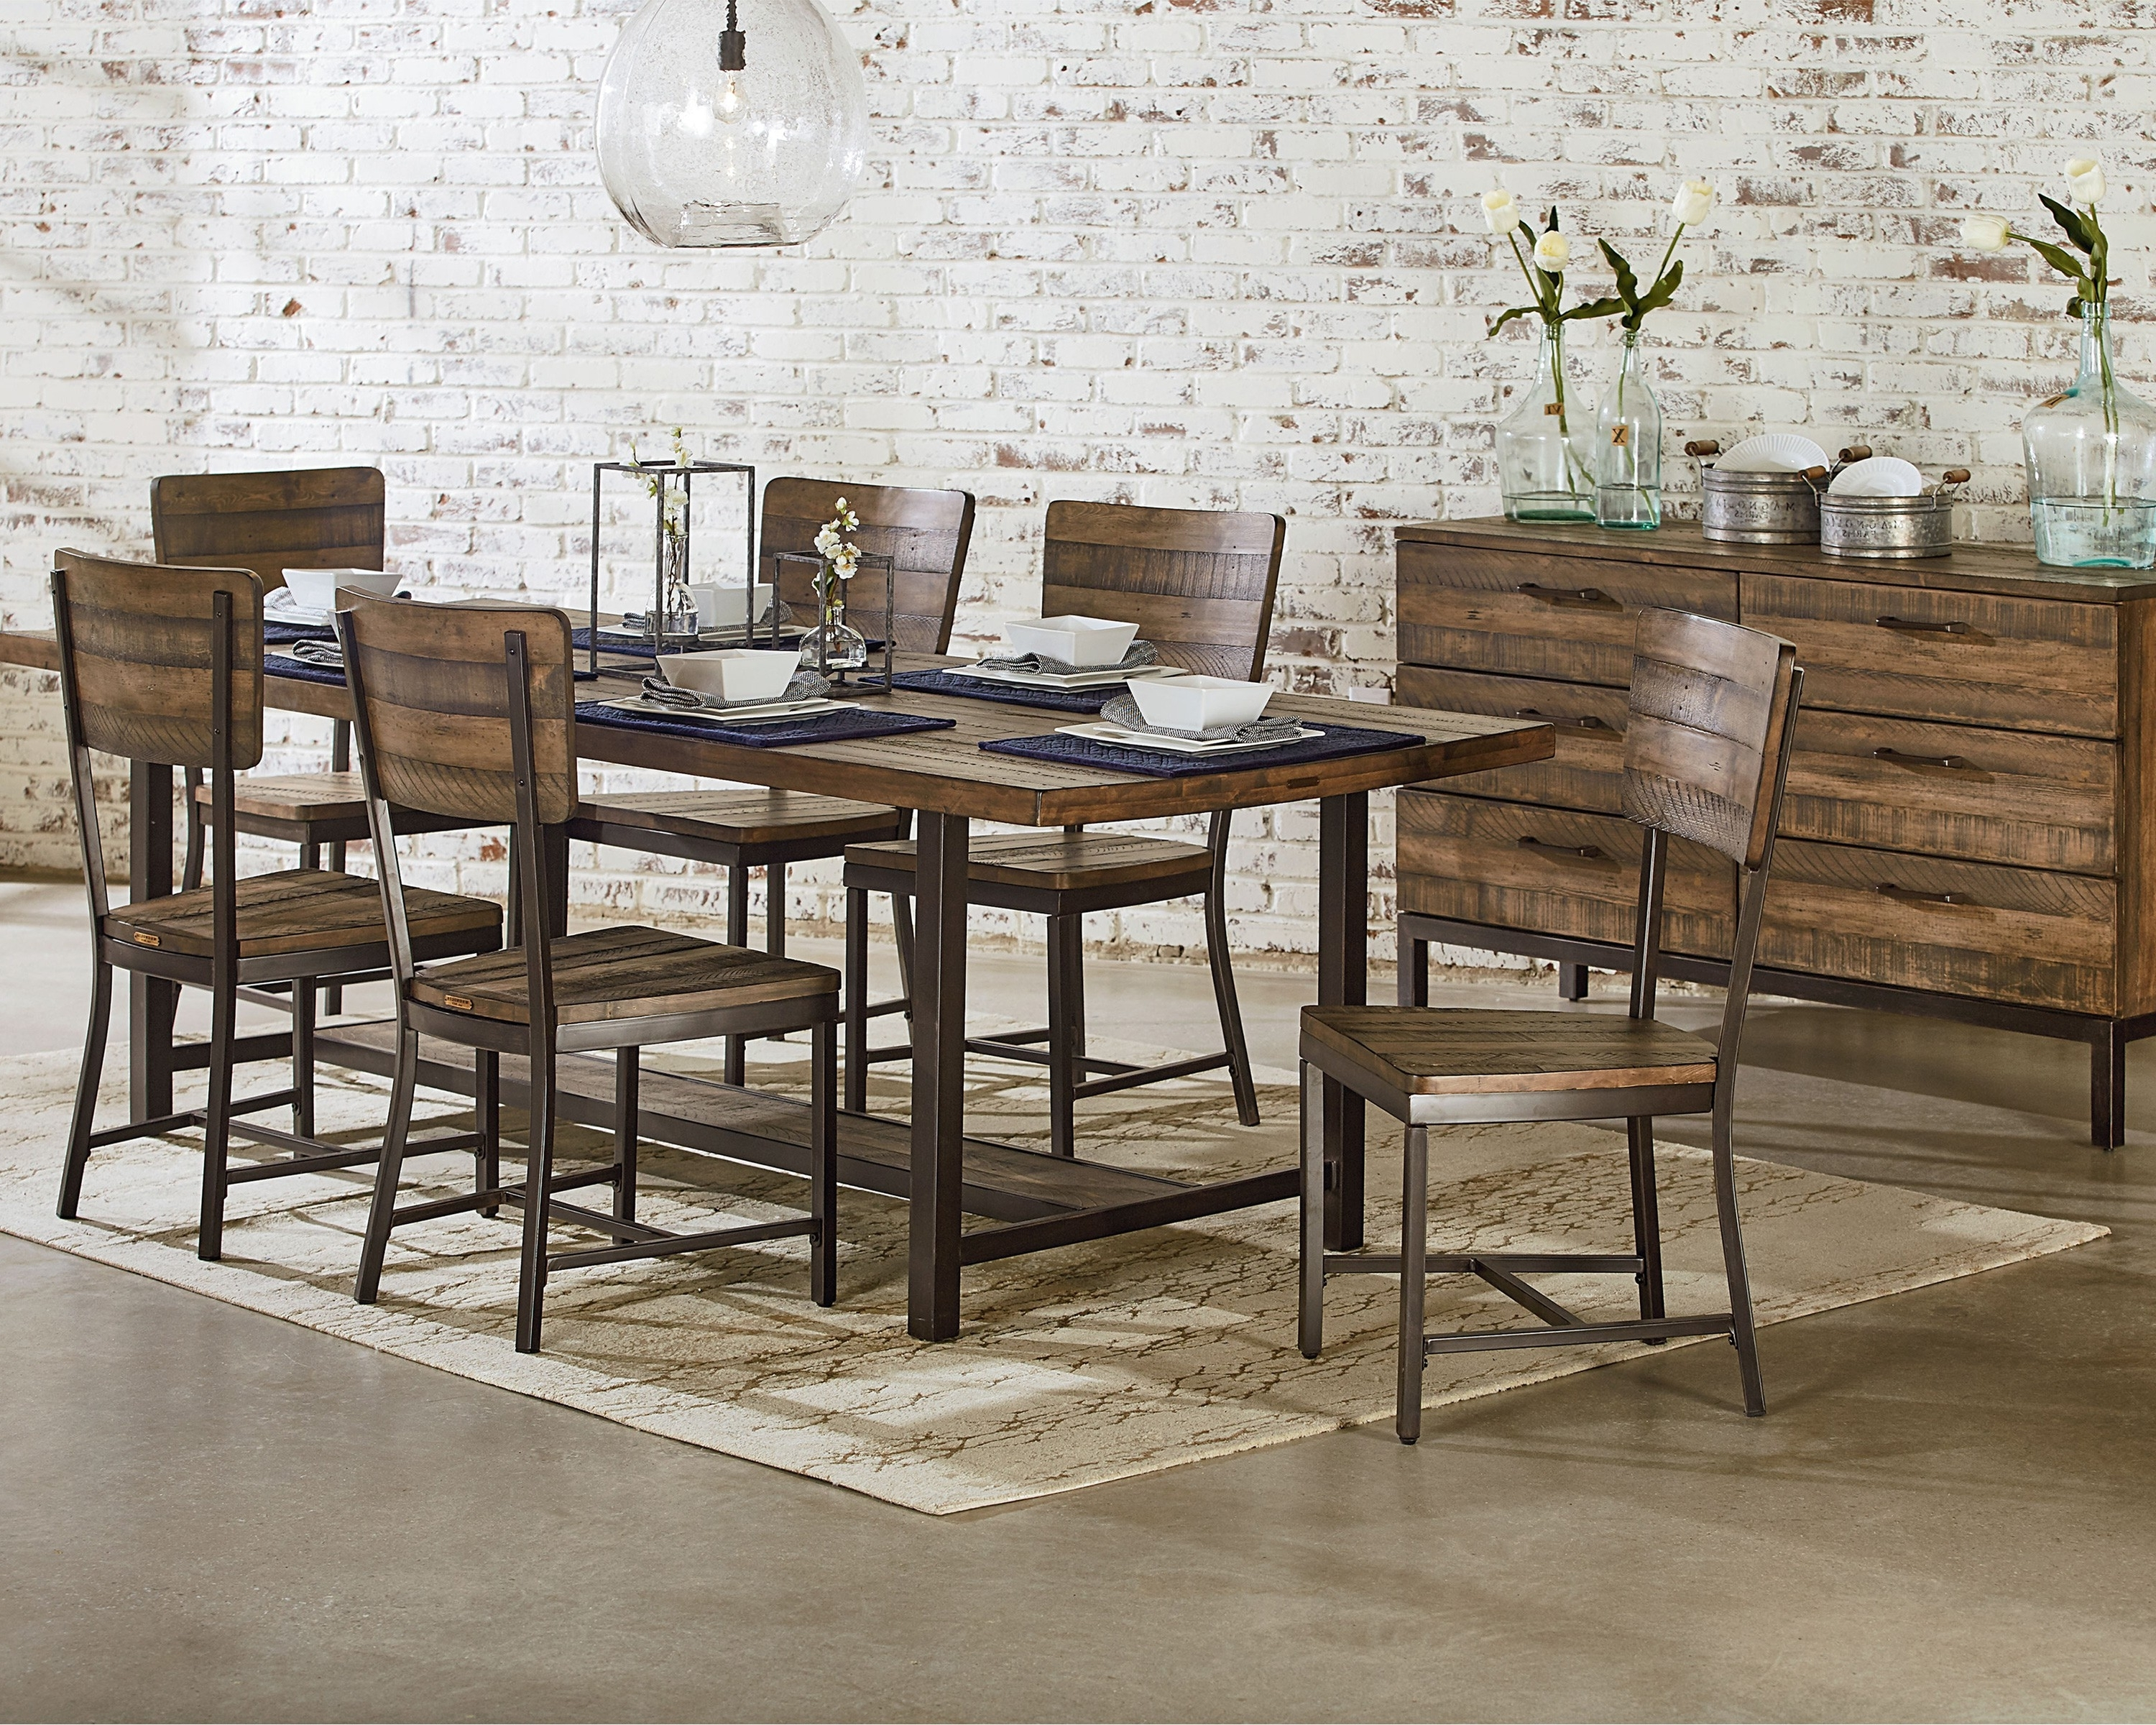 Magnolia Home Contour Milk Crate Side Chairs Regarding Fashionable Contour Side Chair – Magnolia Home (View 7 of 20)